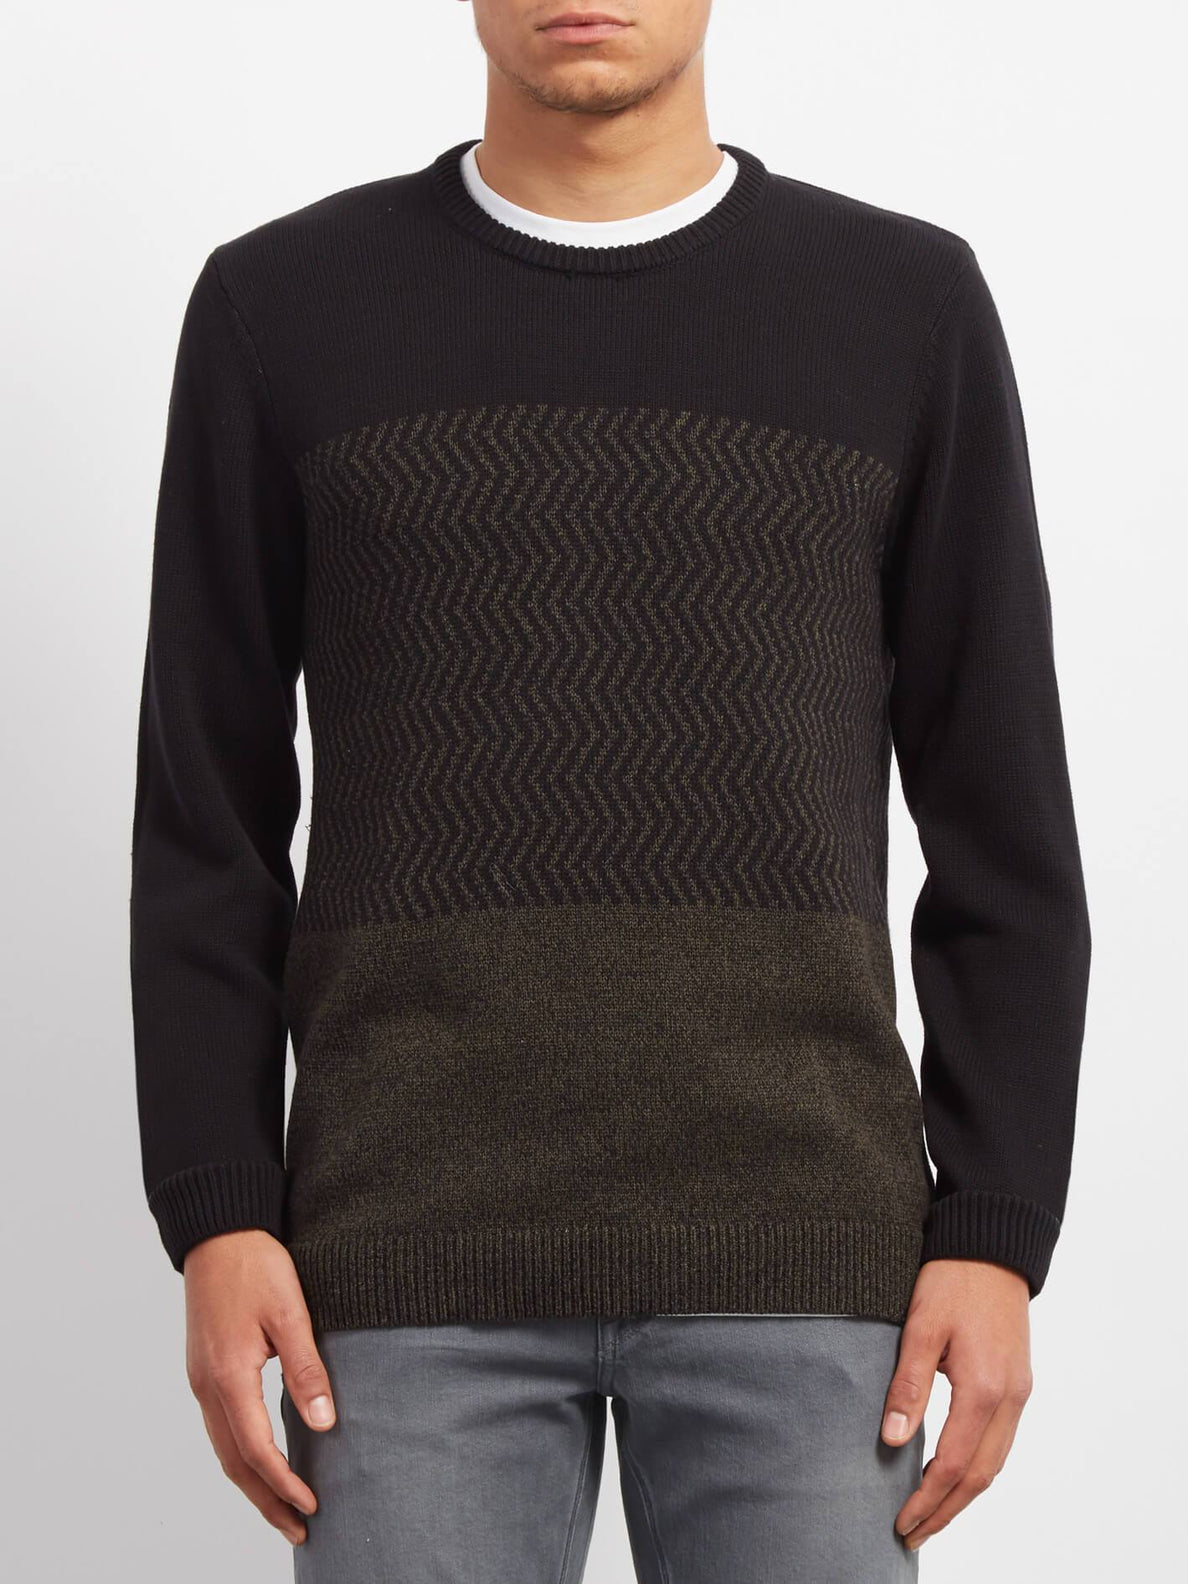 Bario  Update Pullover - Black